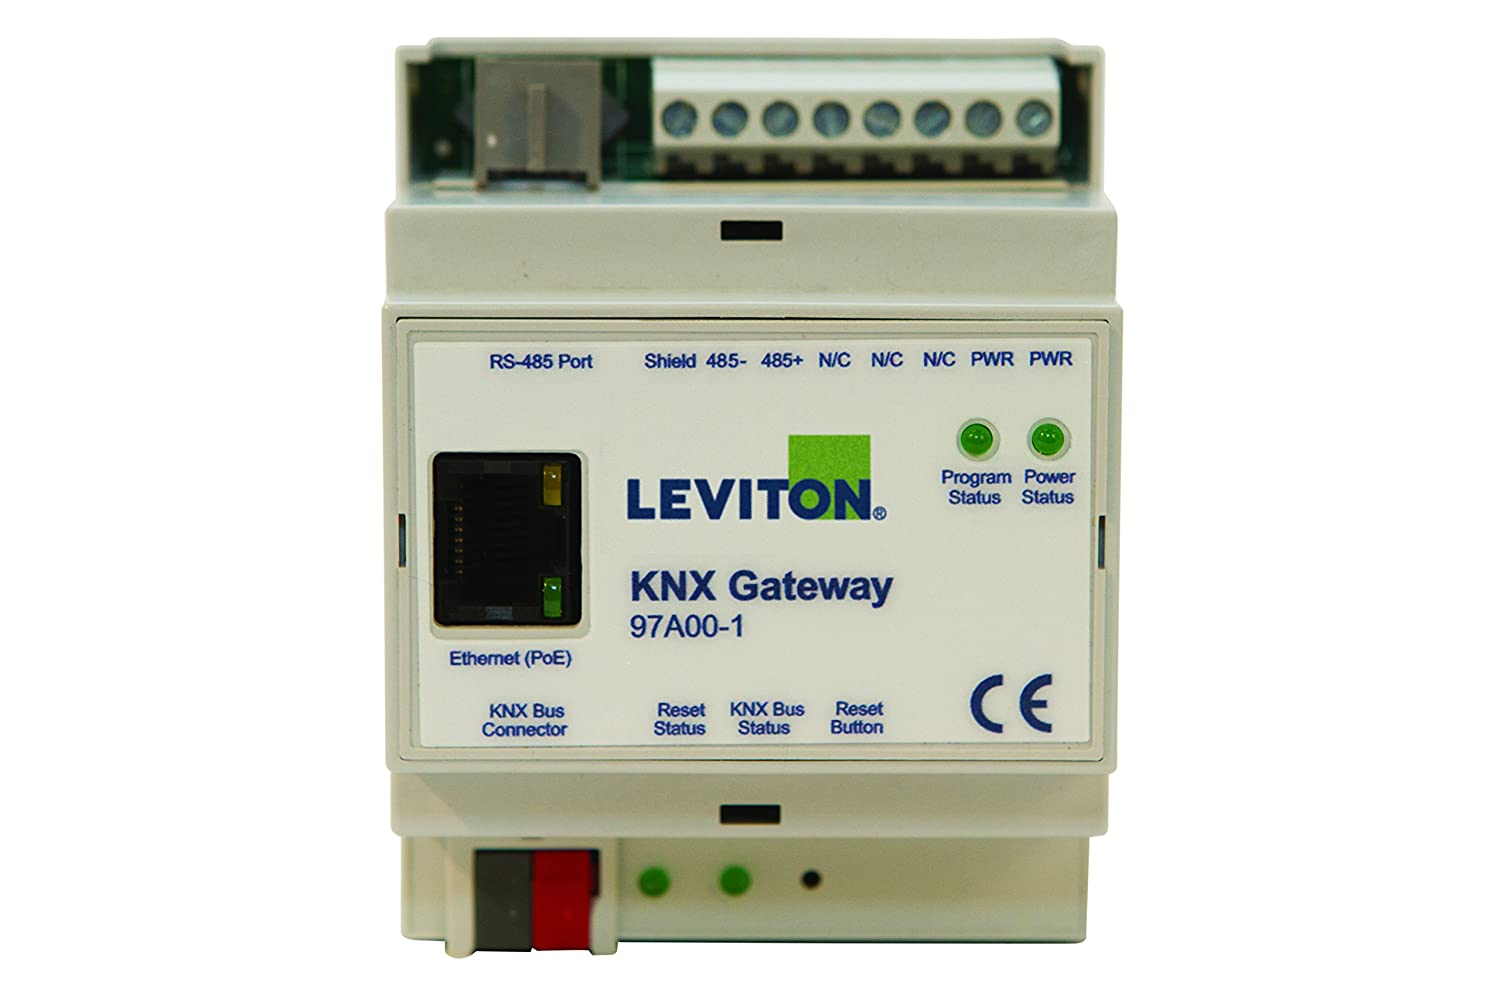 Amazon.com: Leviton 97A00-1 KNX Gateway: Home Improvement